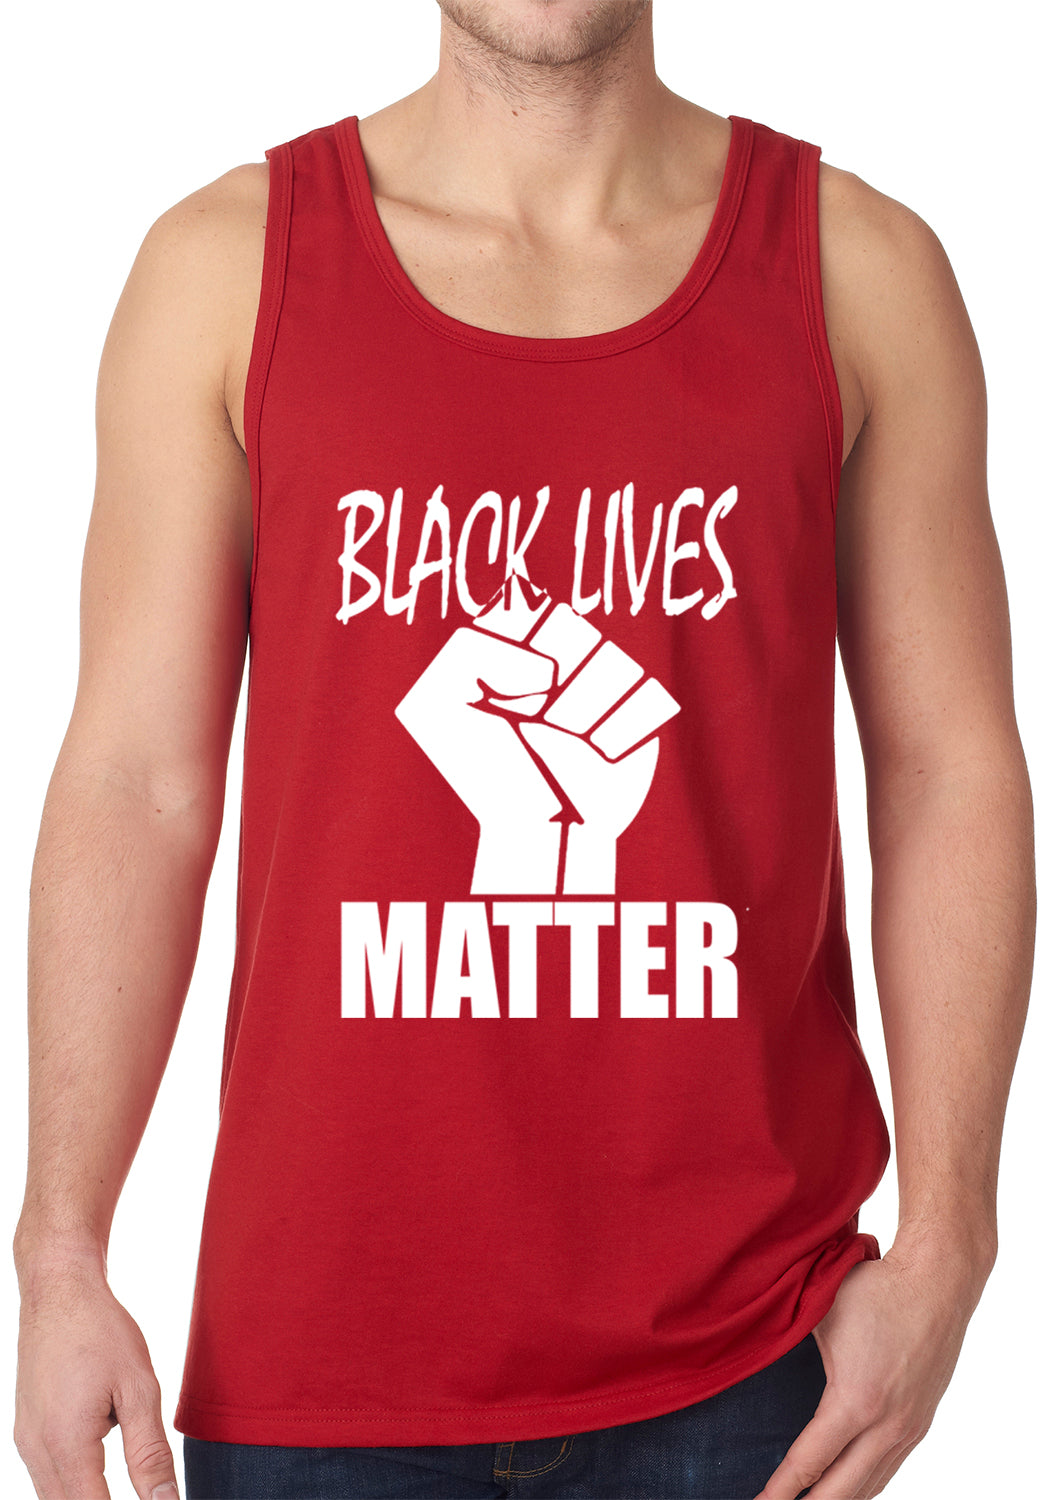 Black Lives Matter Fist Tank Top